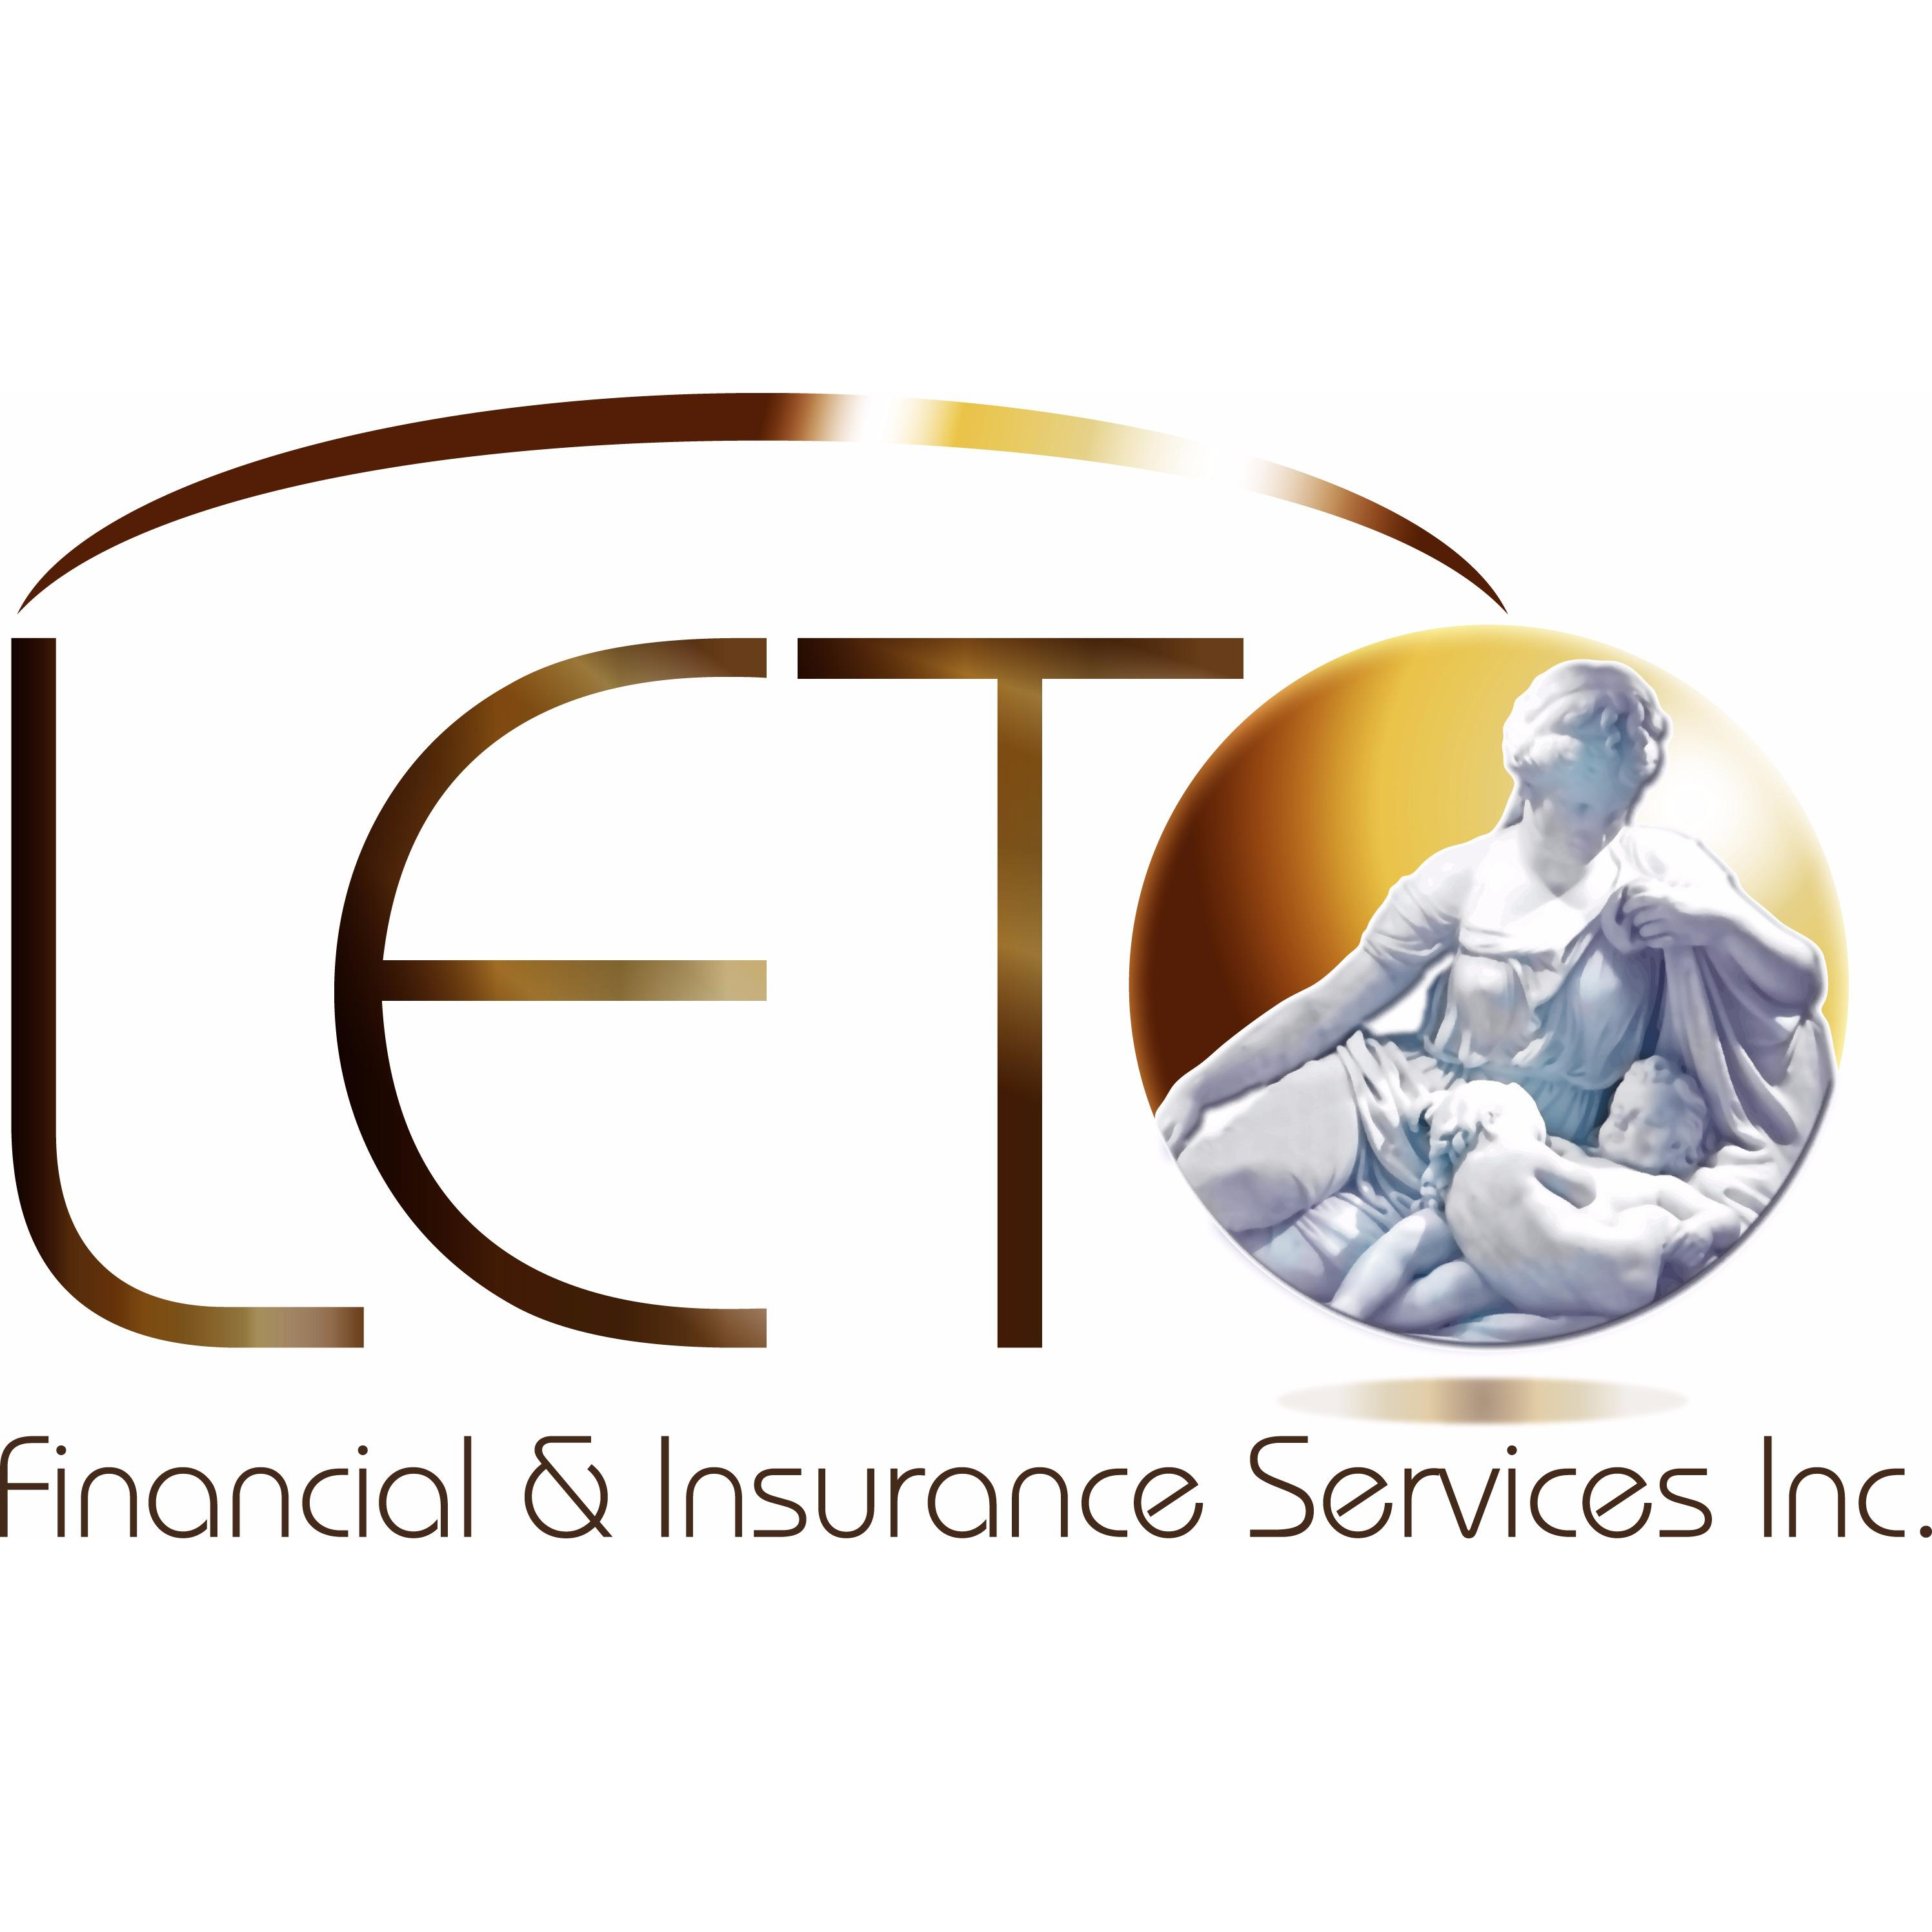 Leto Financial & Insurance Services Inc.